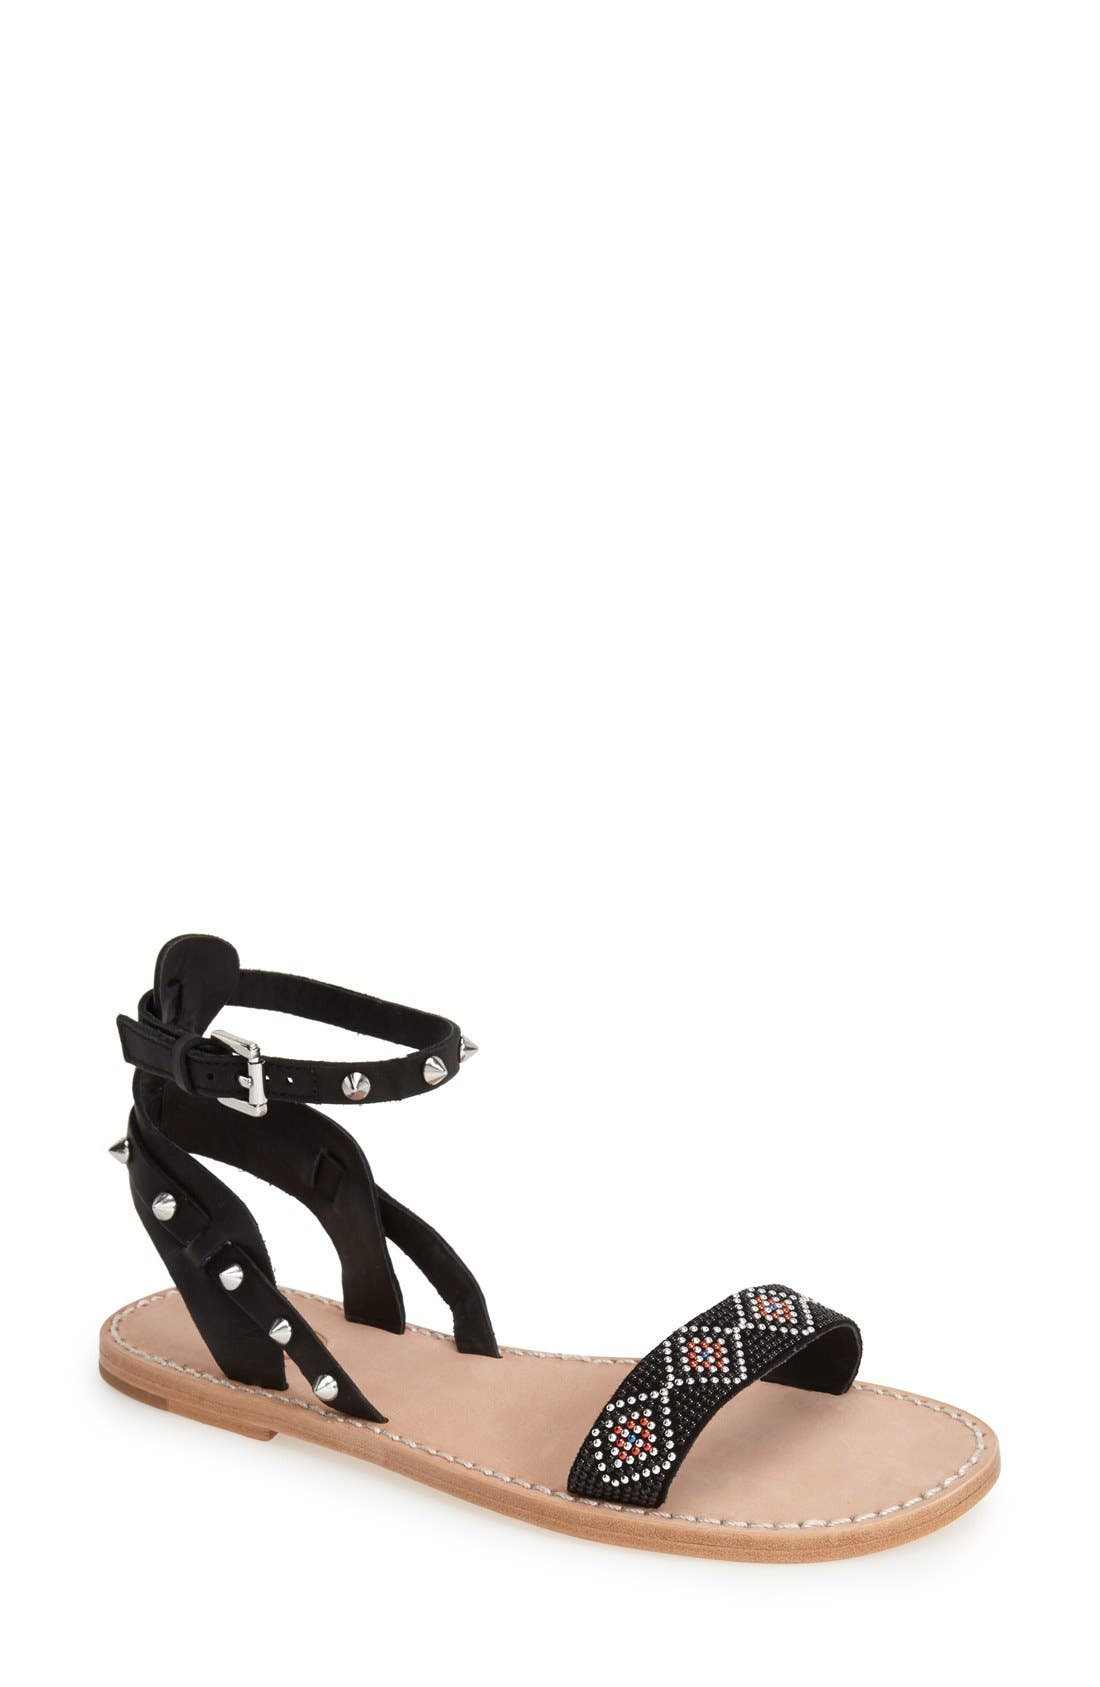 'Pearl' Studded Leather Sandal,                             Main thumbnail 1, color,                             001